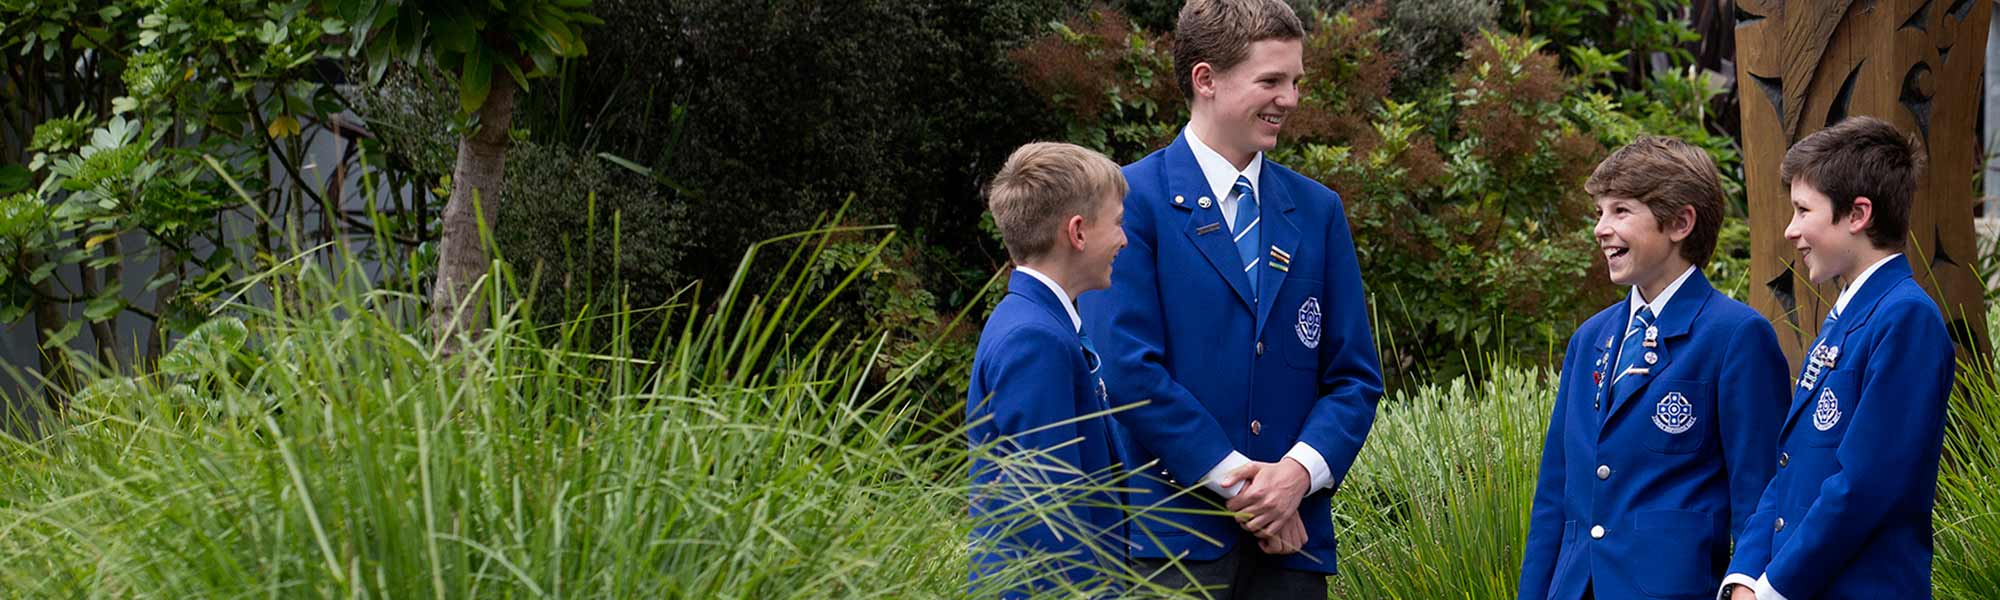 Saint-Kentigern-Boys-School-homepage.jpg